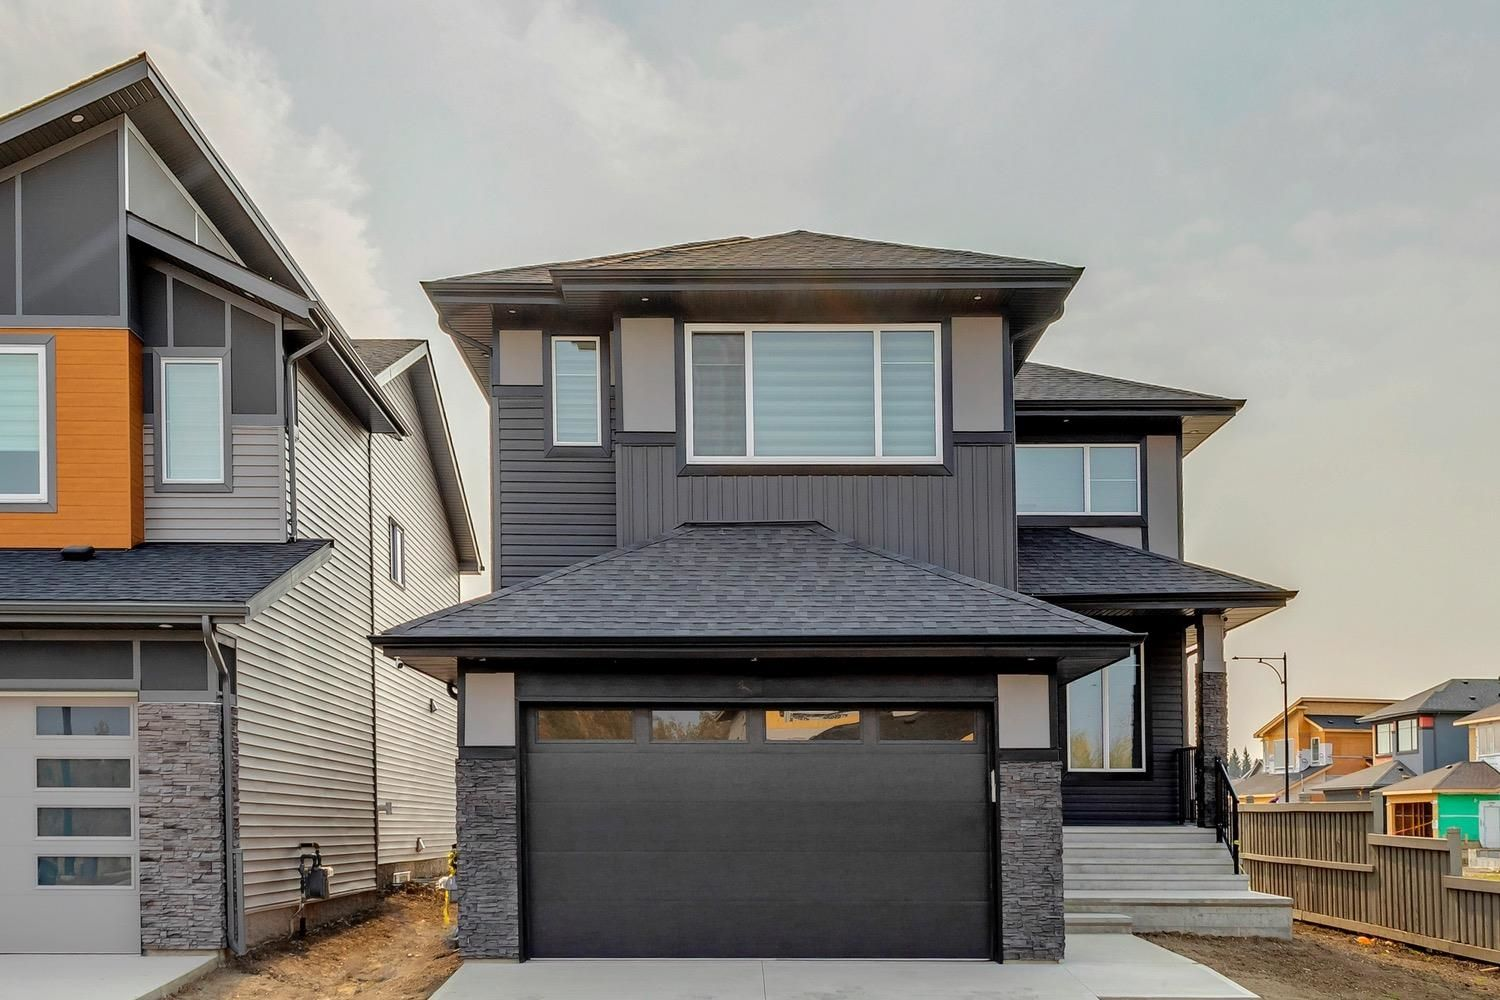 Main Photo: 6059 crawford drive in Edmonton: Zone 55 House for sale : MLS®# E4266143